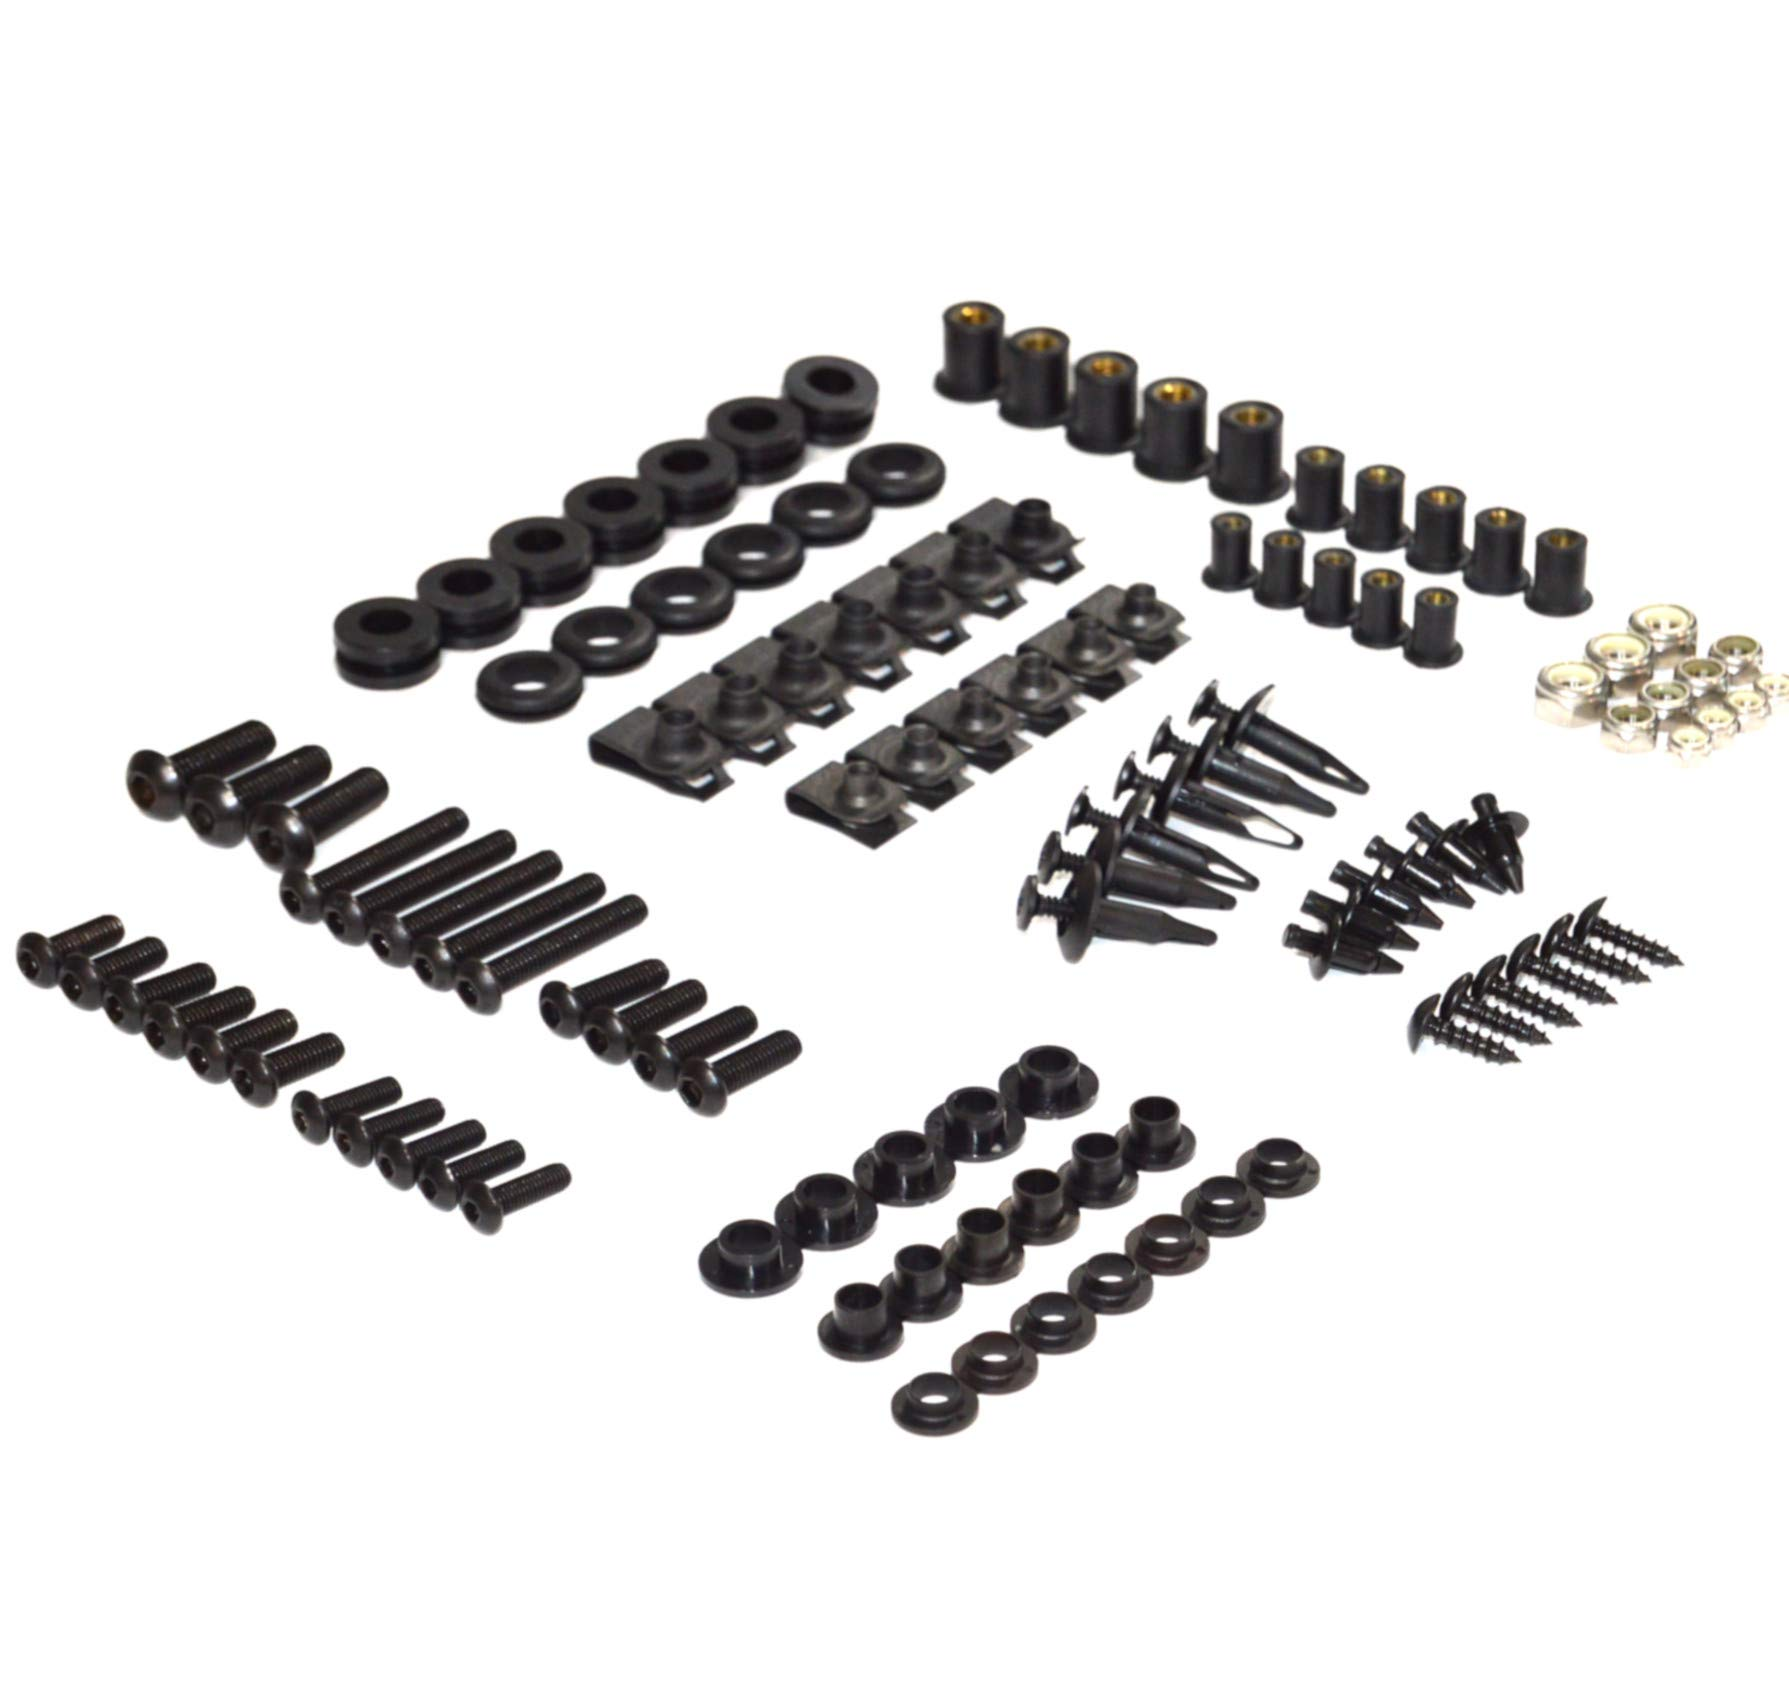 Black Complete Motorcycle Fairing Bolt Kit Yamaha YZF-R6 2008-2015 Body Screws, Fasteners, and Hardware